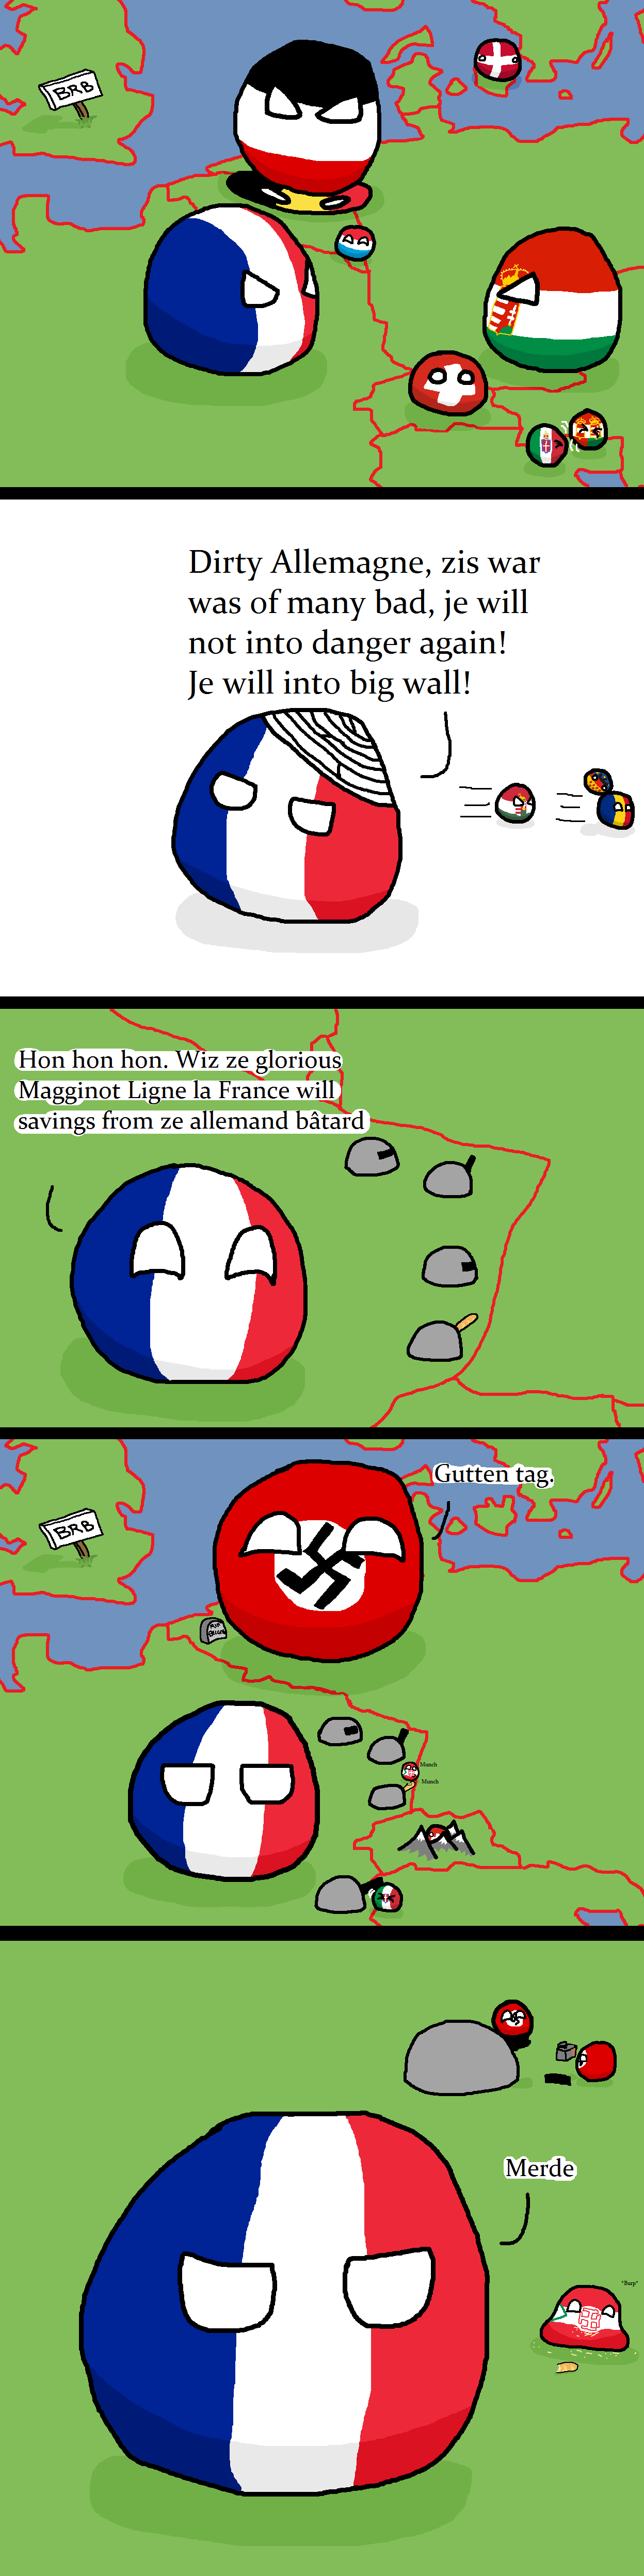 France Cannot into Defense